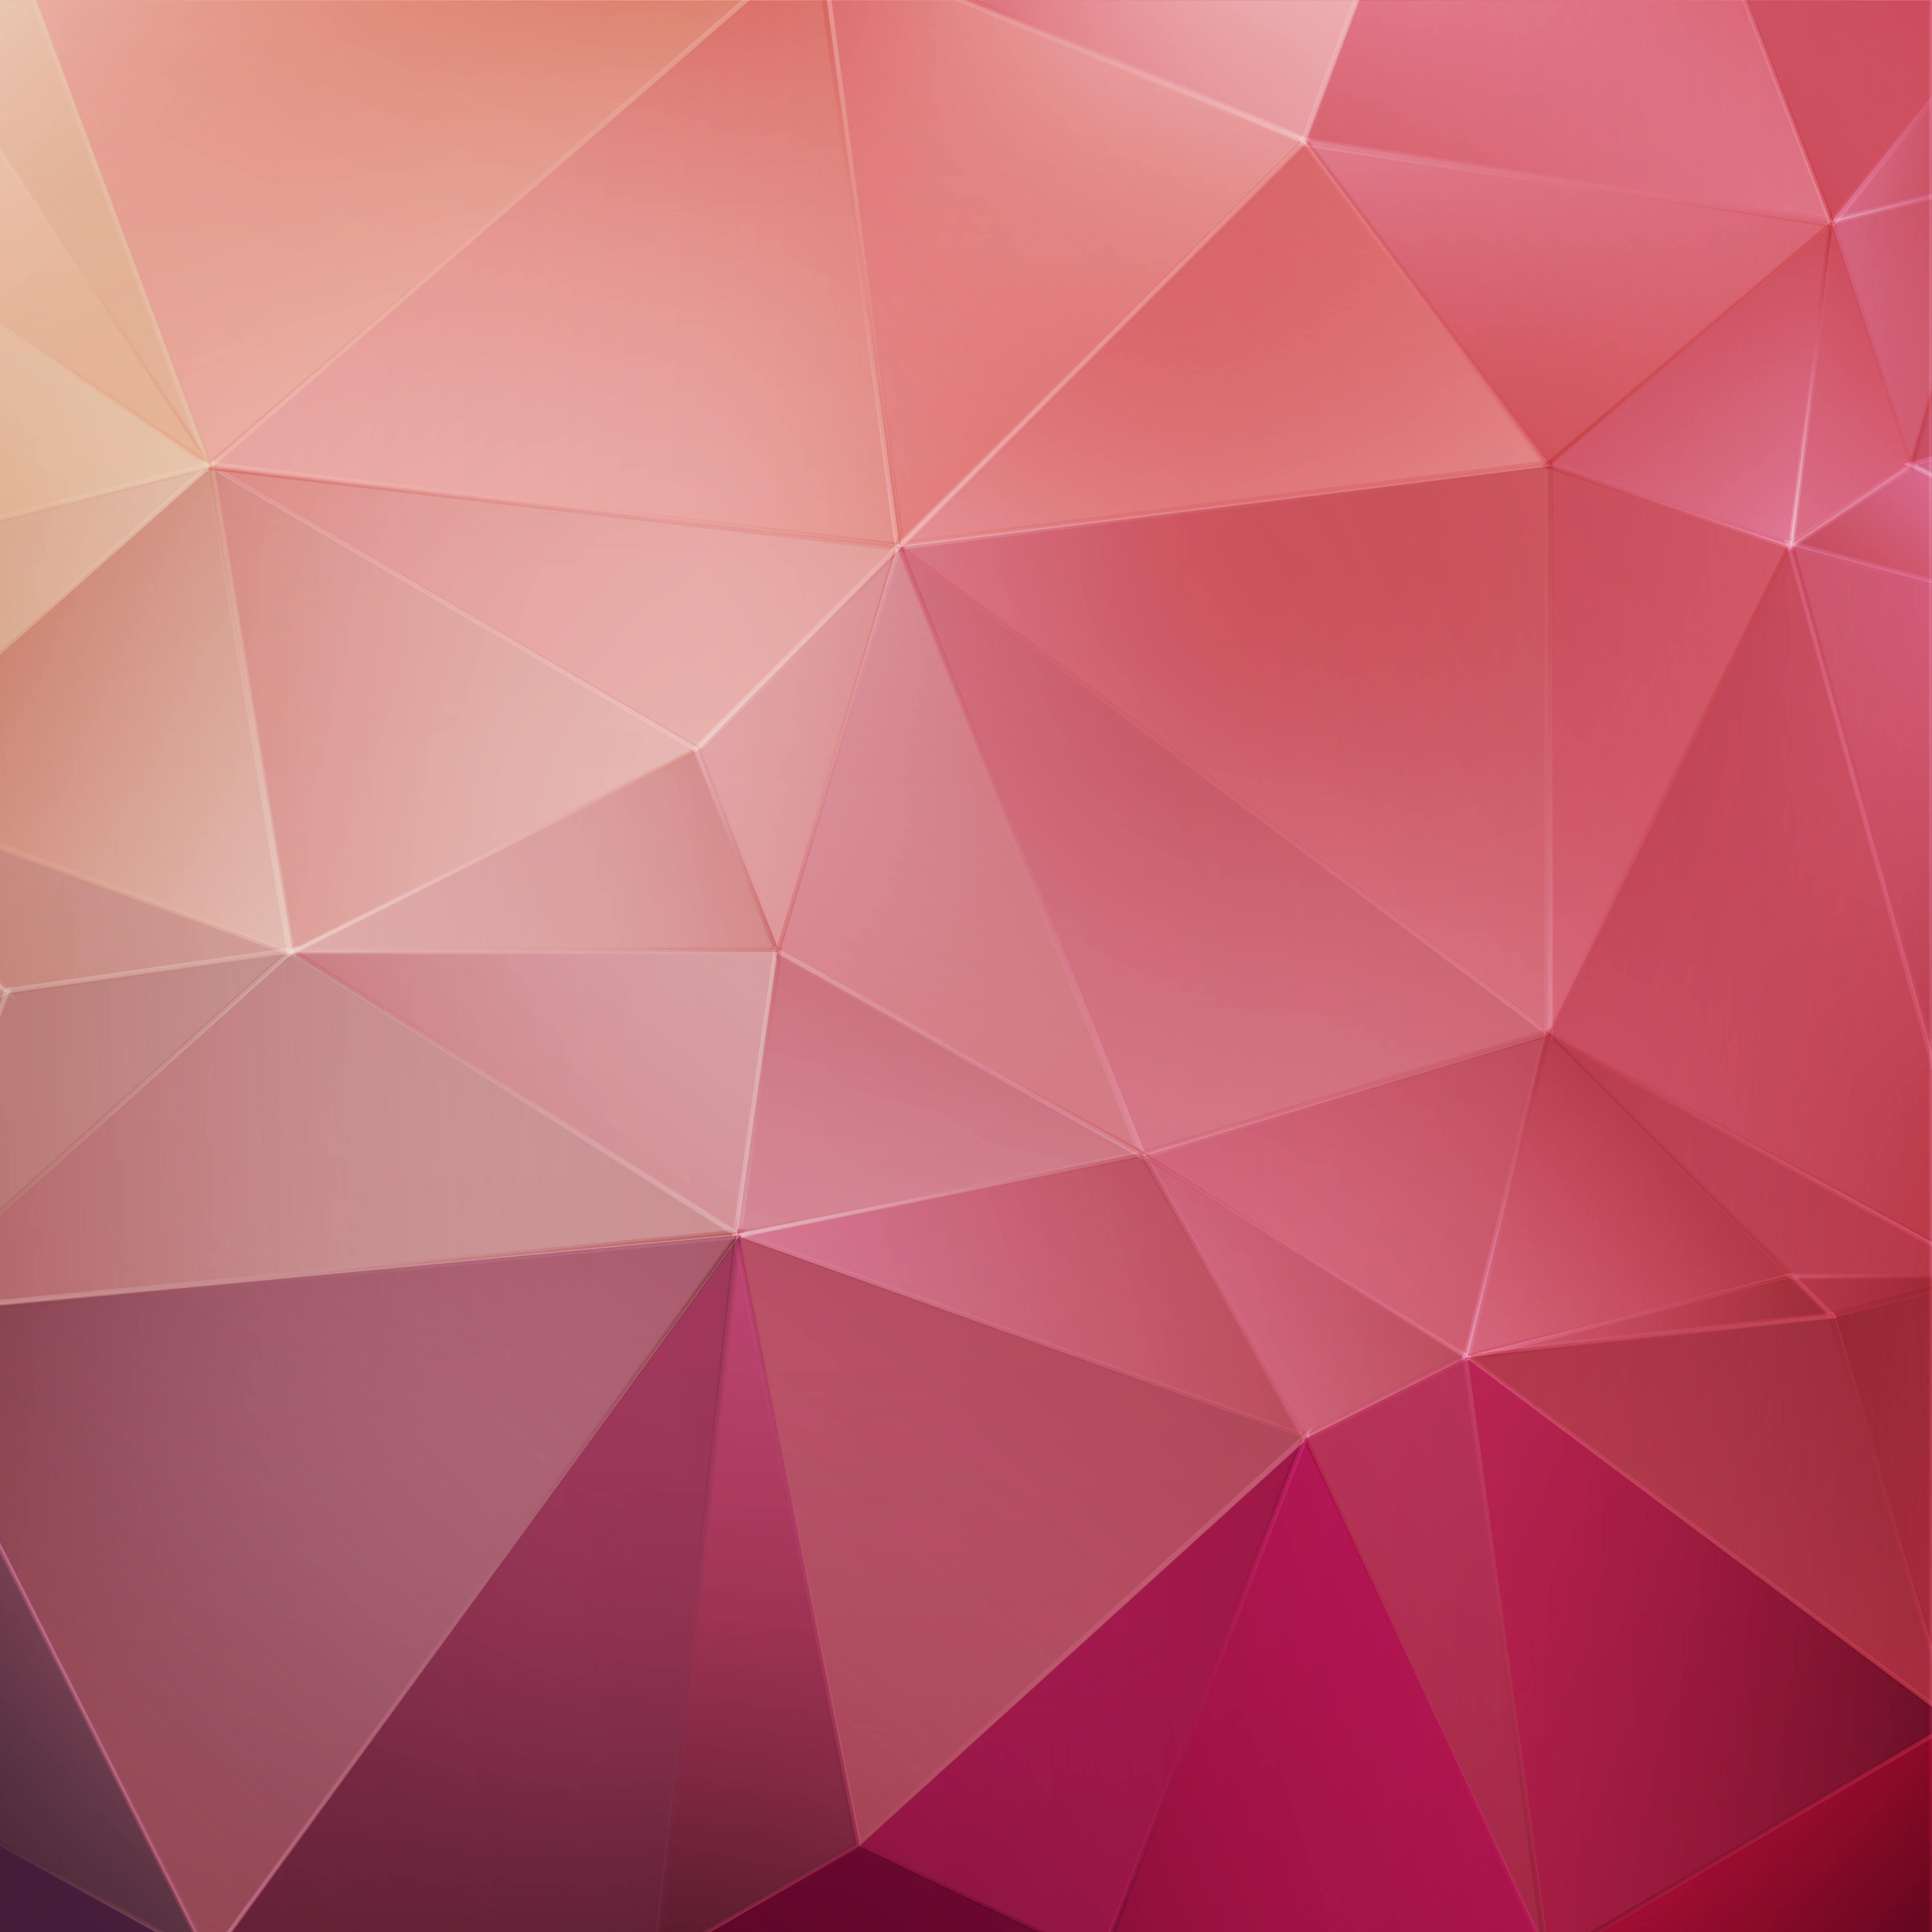 Pink Crystal Geometric Background Download Free Vectors Clipart Graphics Amp Vector Art